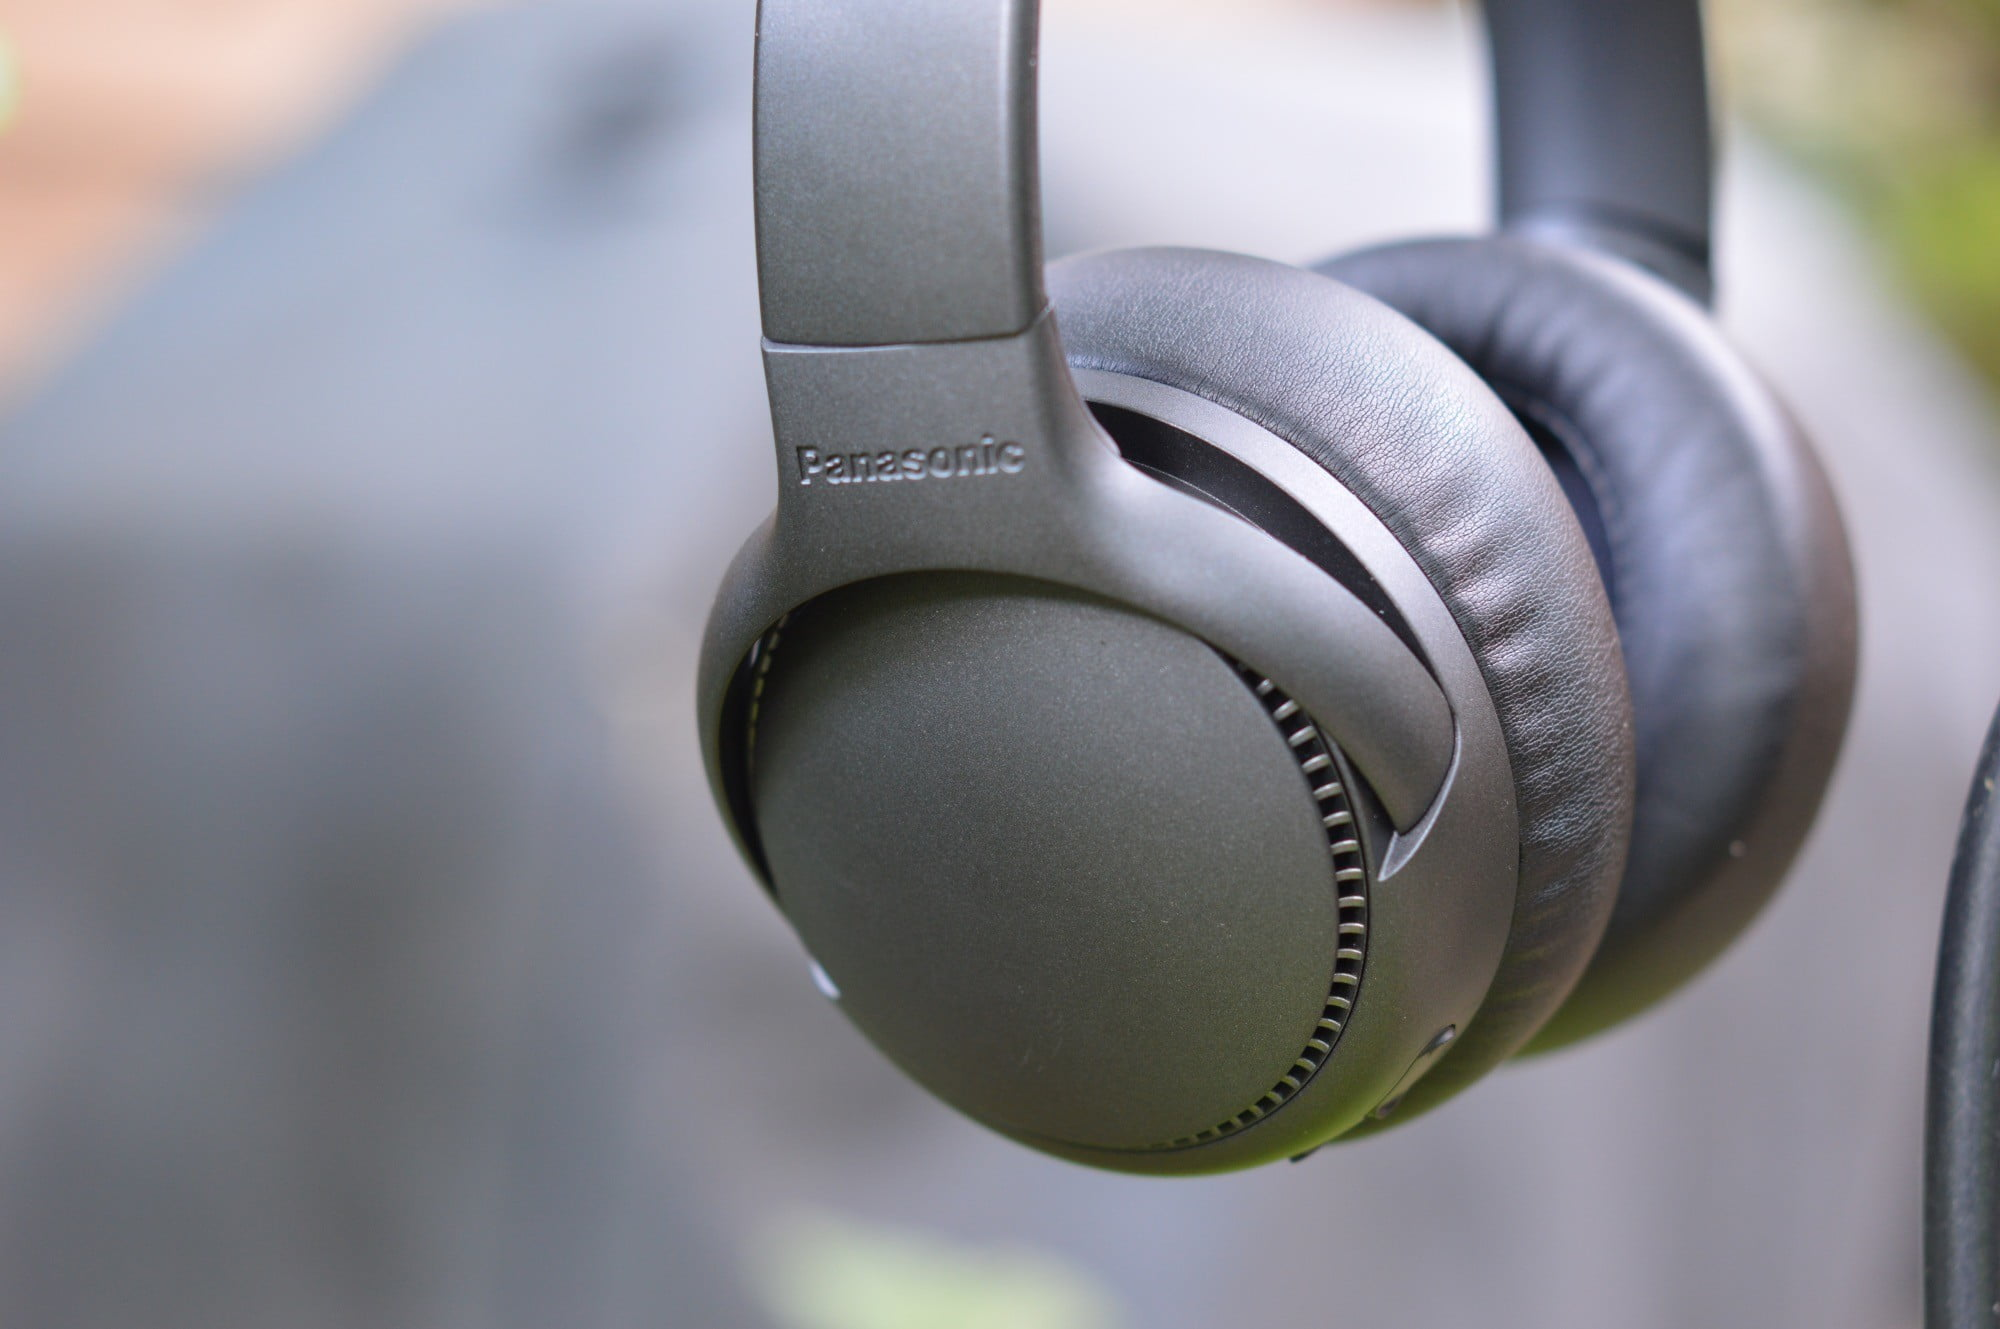 Panasonic RB-M700 headphones